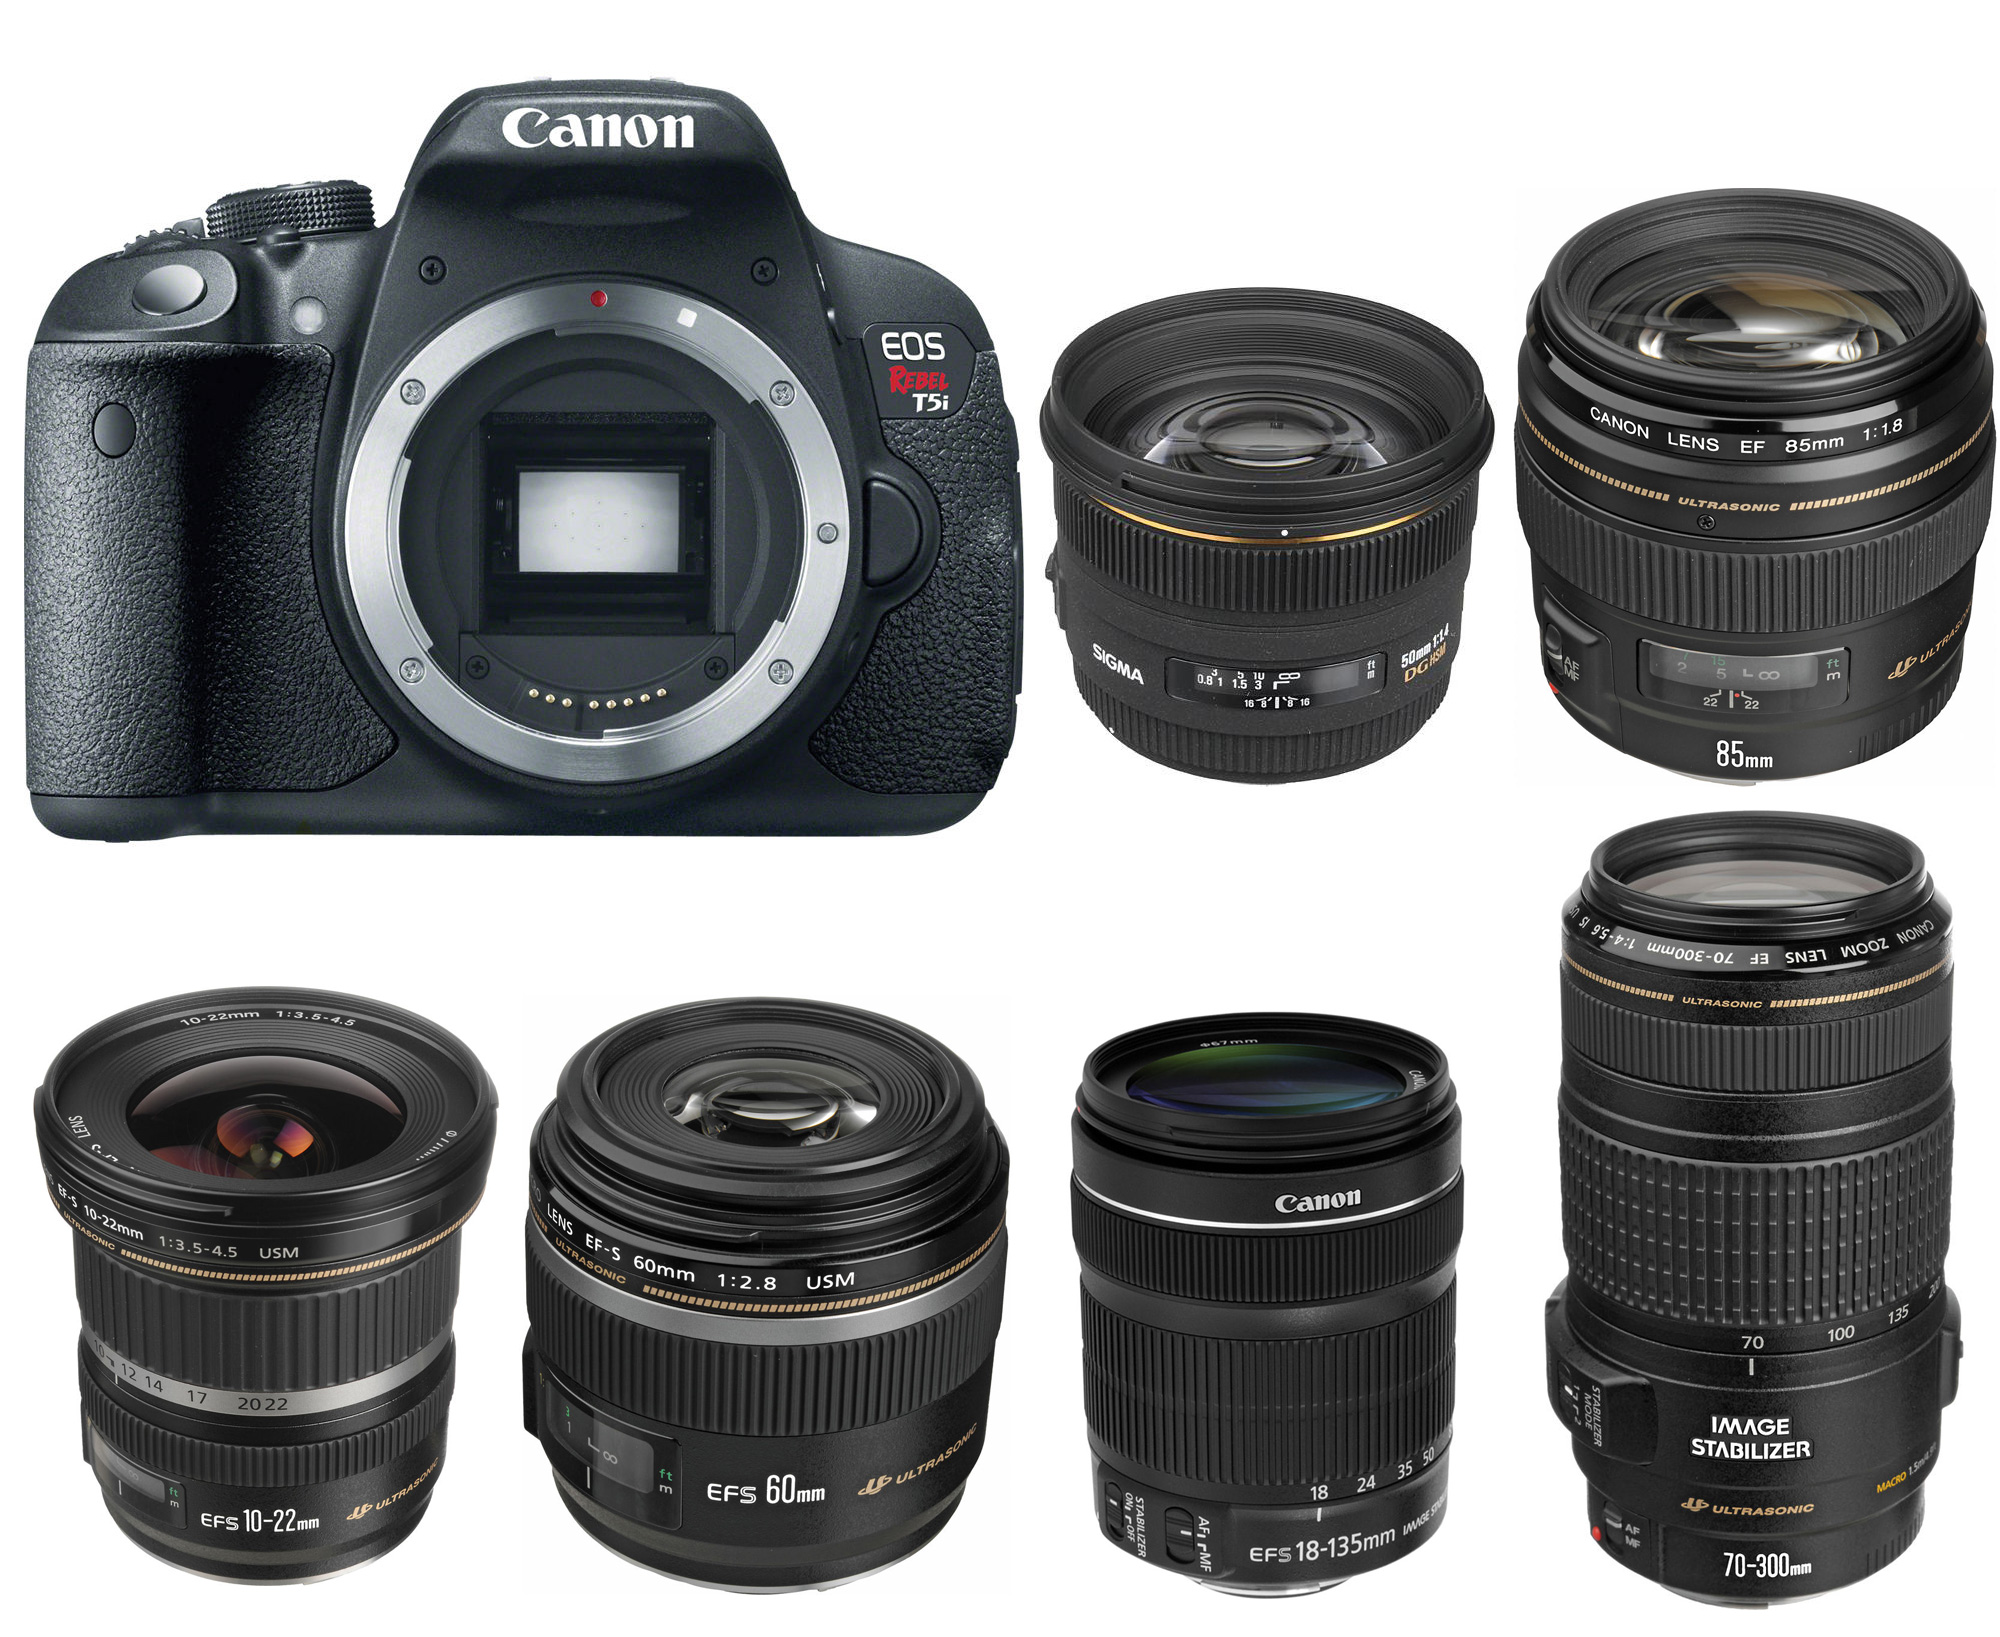 Canon EOS 700D/Rebel T5i is an entry-level APS-C DSLR announced in